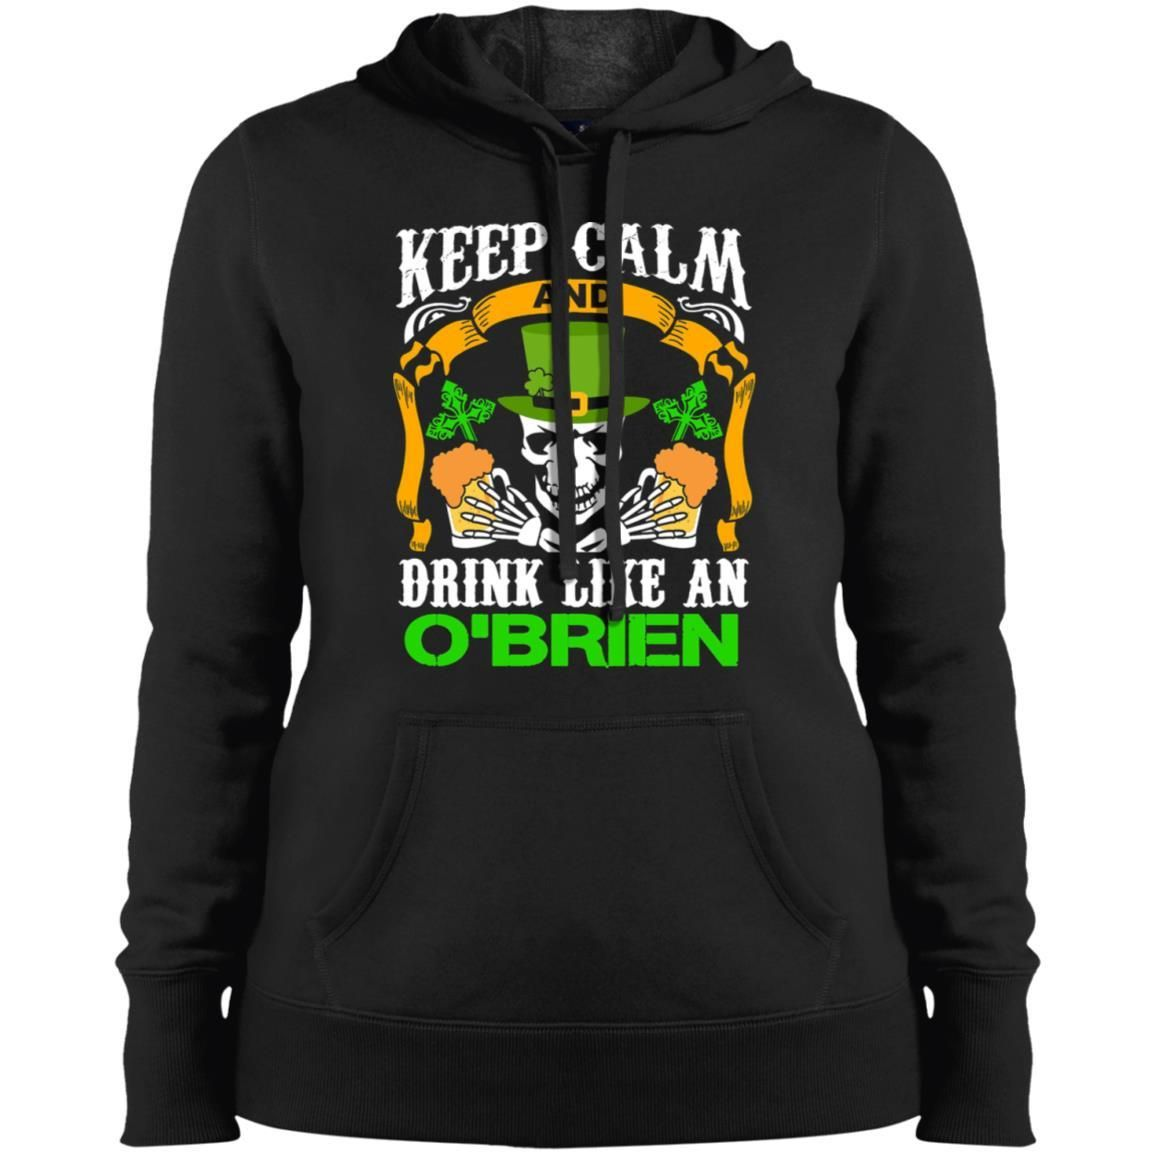 Keep Calm And Drink Like An O Brien Women S Hoodie Keep Calm And Drink Like An O Brien Women S Hoodie Is Custom Mad Hoodies Womens Hoodies Keep Calm And Drink